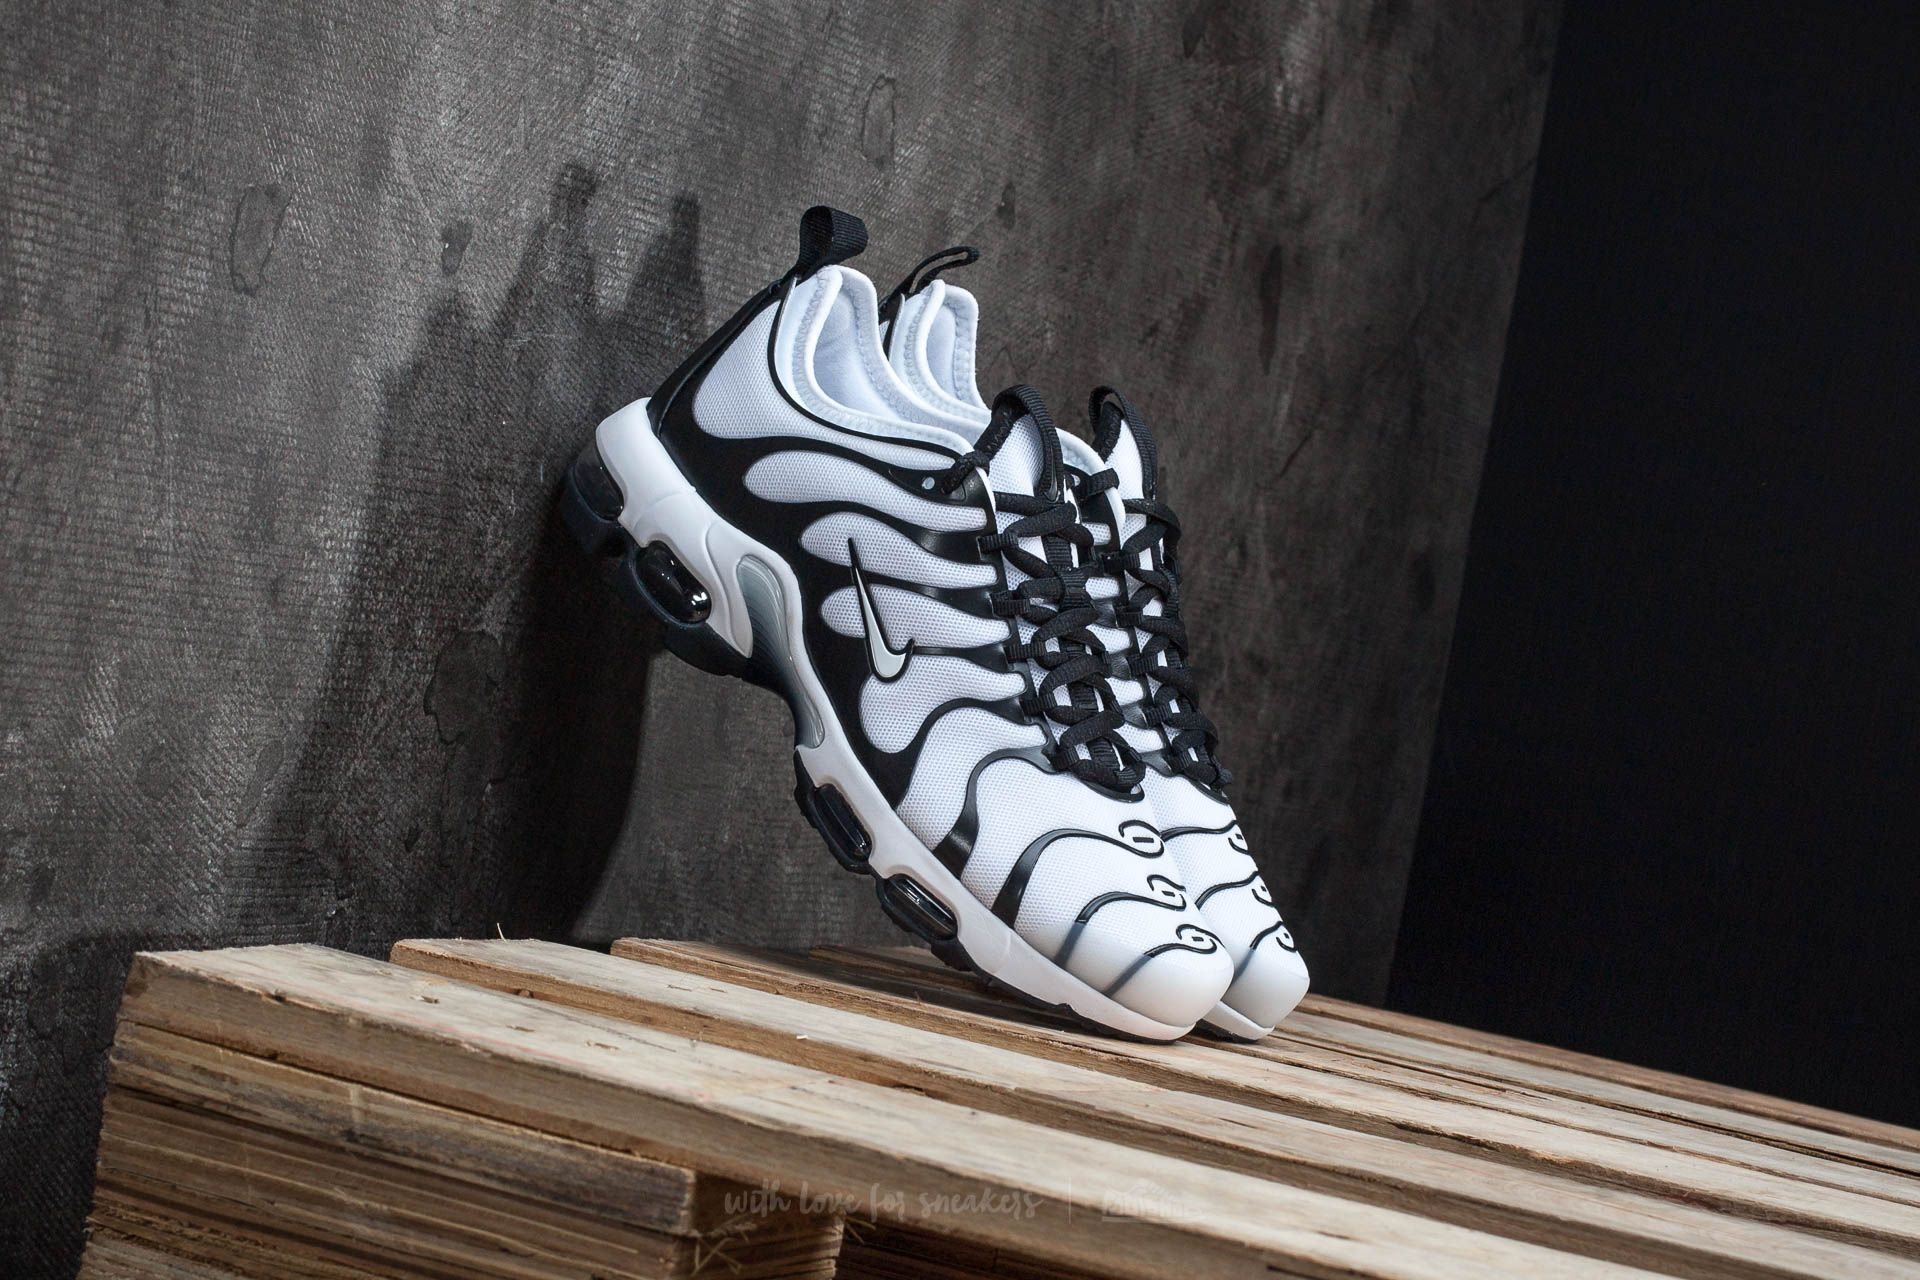 c66e206d98 Nike Wmns Air Max Plus TN Ultra White/ White-Black | Footshop